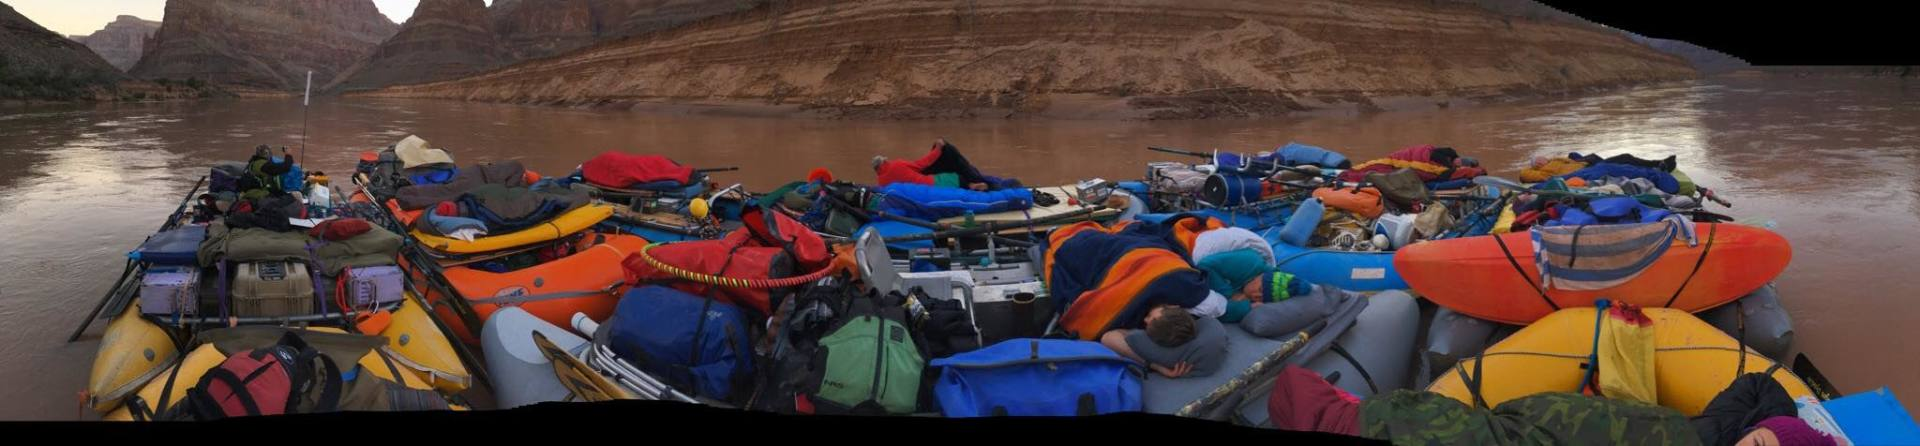 Early morning view of our flotilla, Derek and I are under the blue and orange blanket just right of center